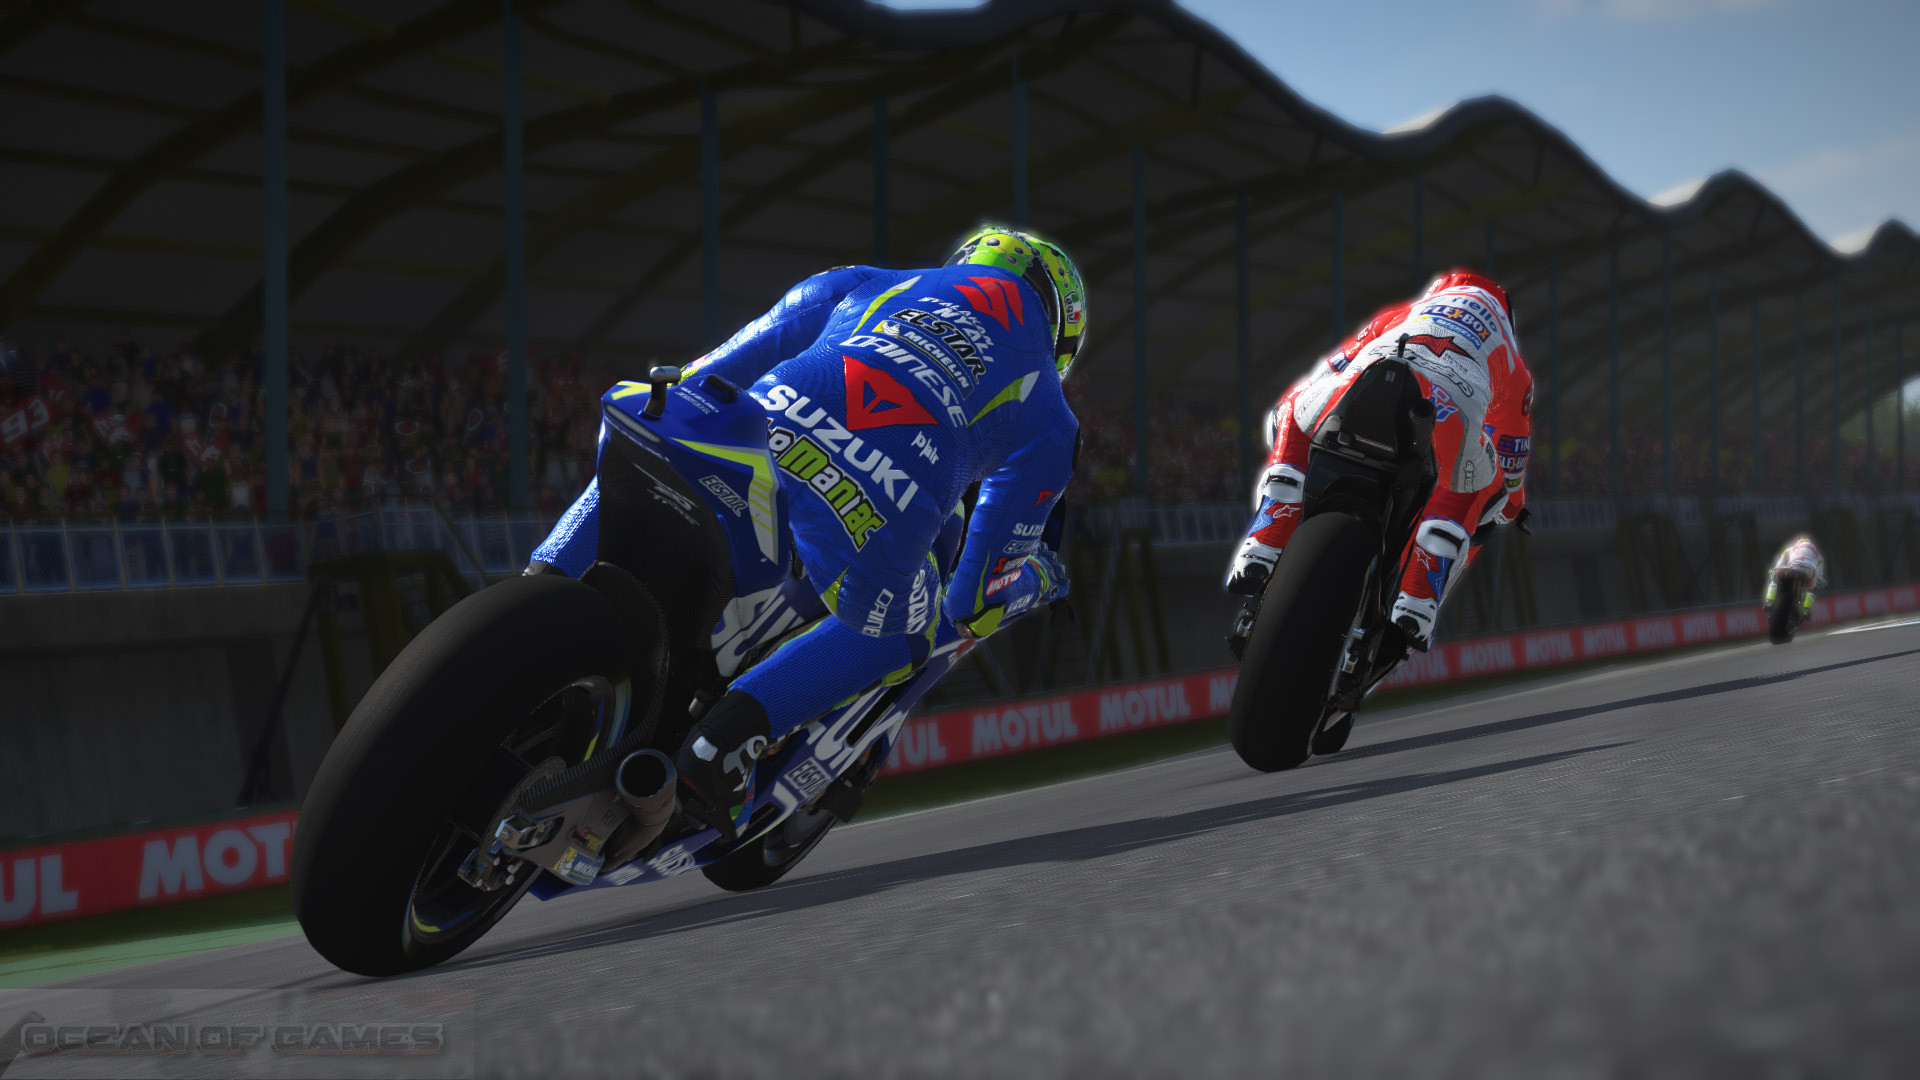 MotoGP 17 DOwnload For Free